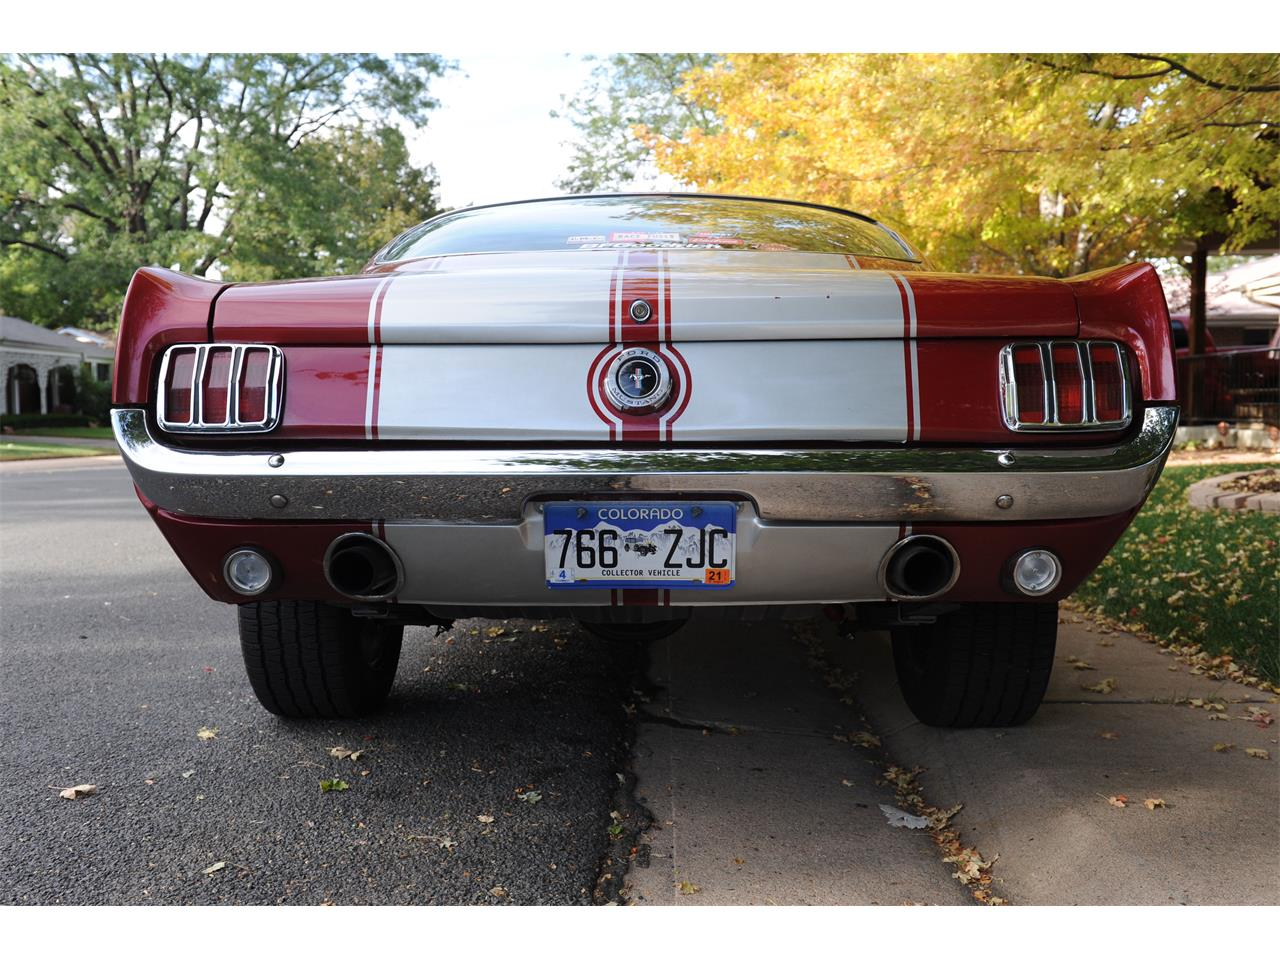 Large Picture of Classic '65 Ford Mustang - $48,500.00 Offered by a Private Seller - OO0C